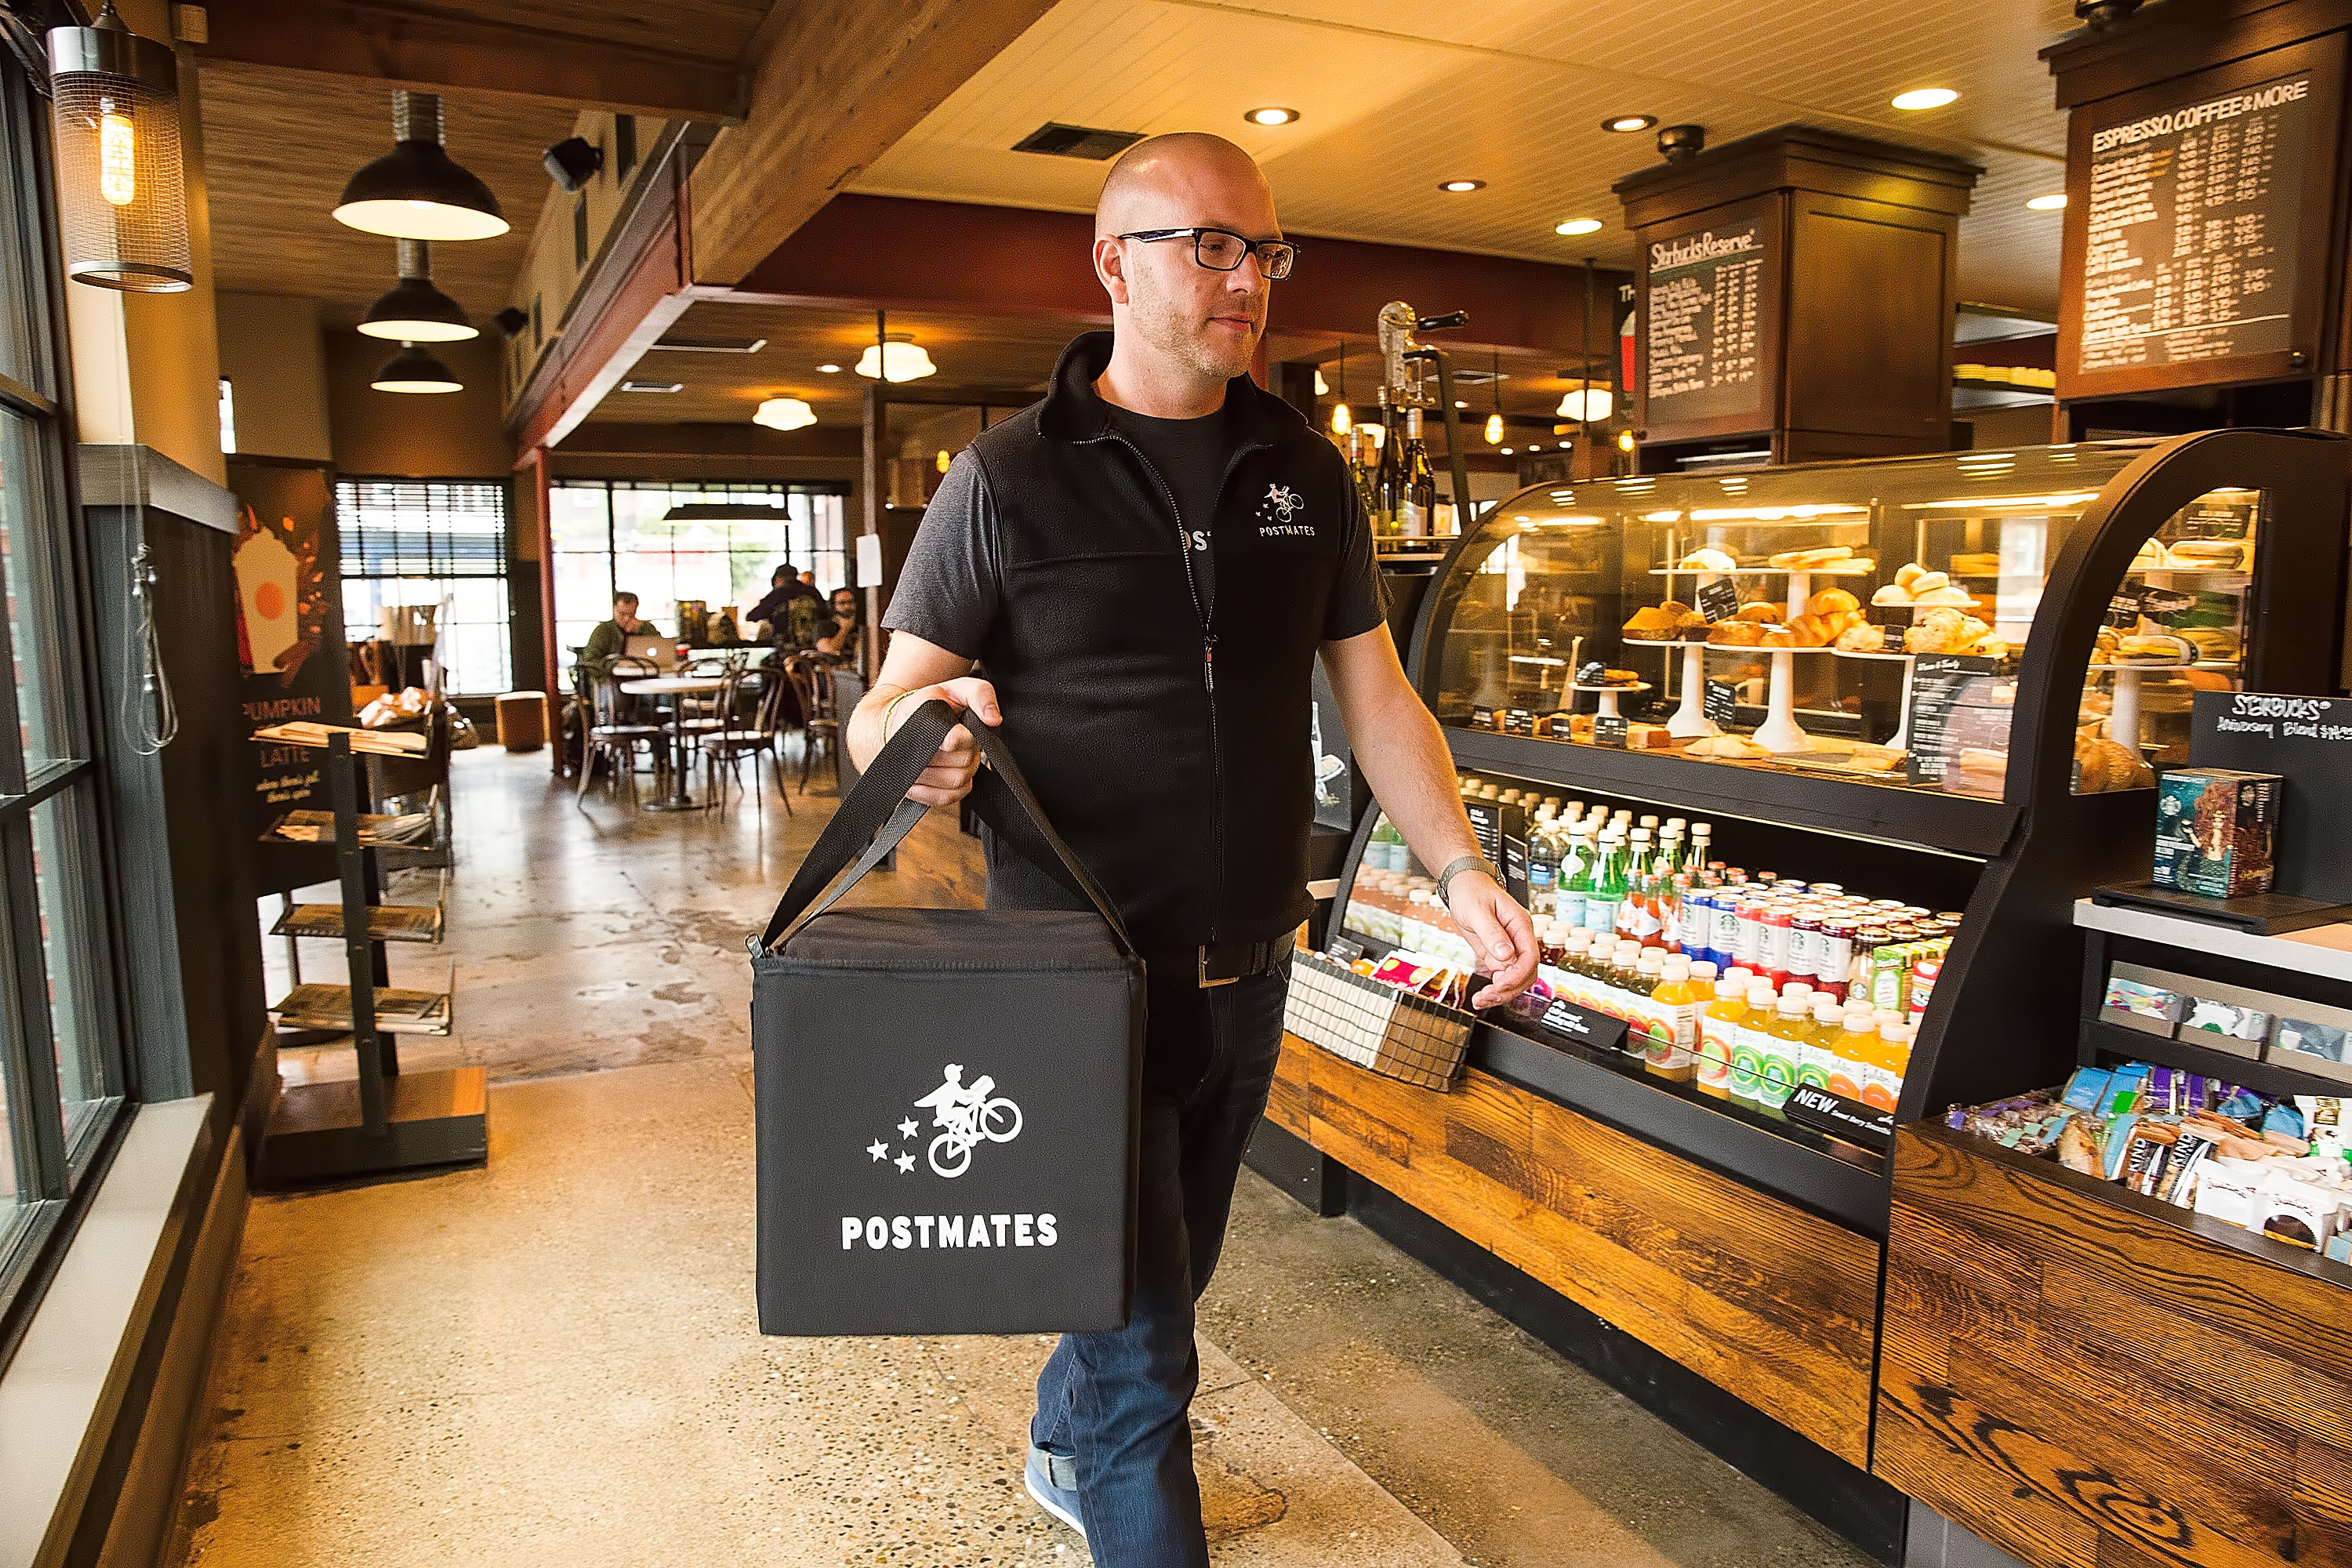 Postmates workers want minimum delivery guarantees and at least $15